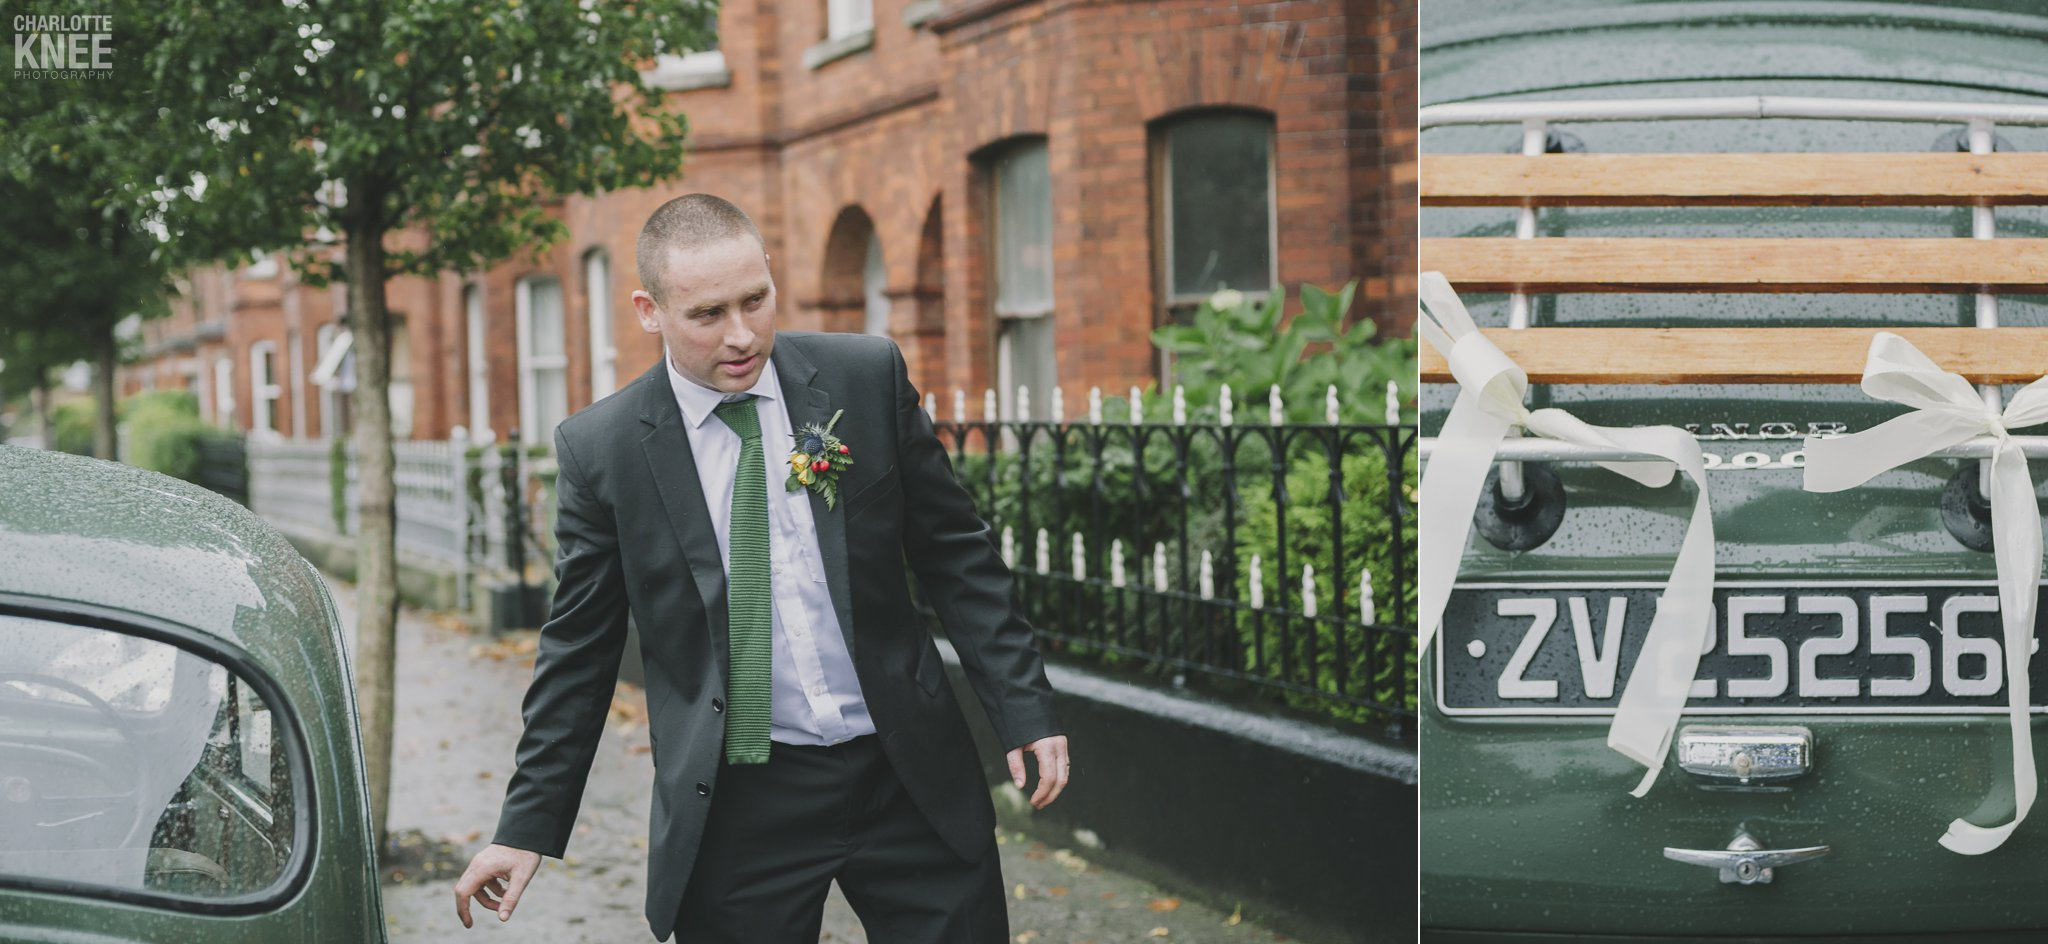 Destination-Wedding-The-Anglers-Rest-Dublin-Charlotte-Knee-Photography_0029.jpg